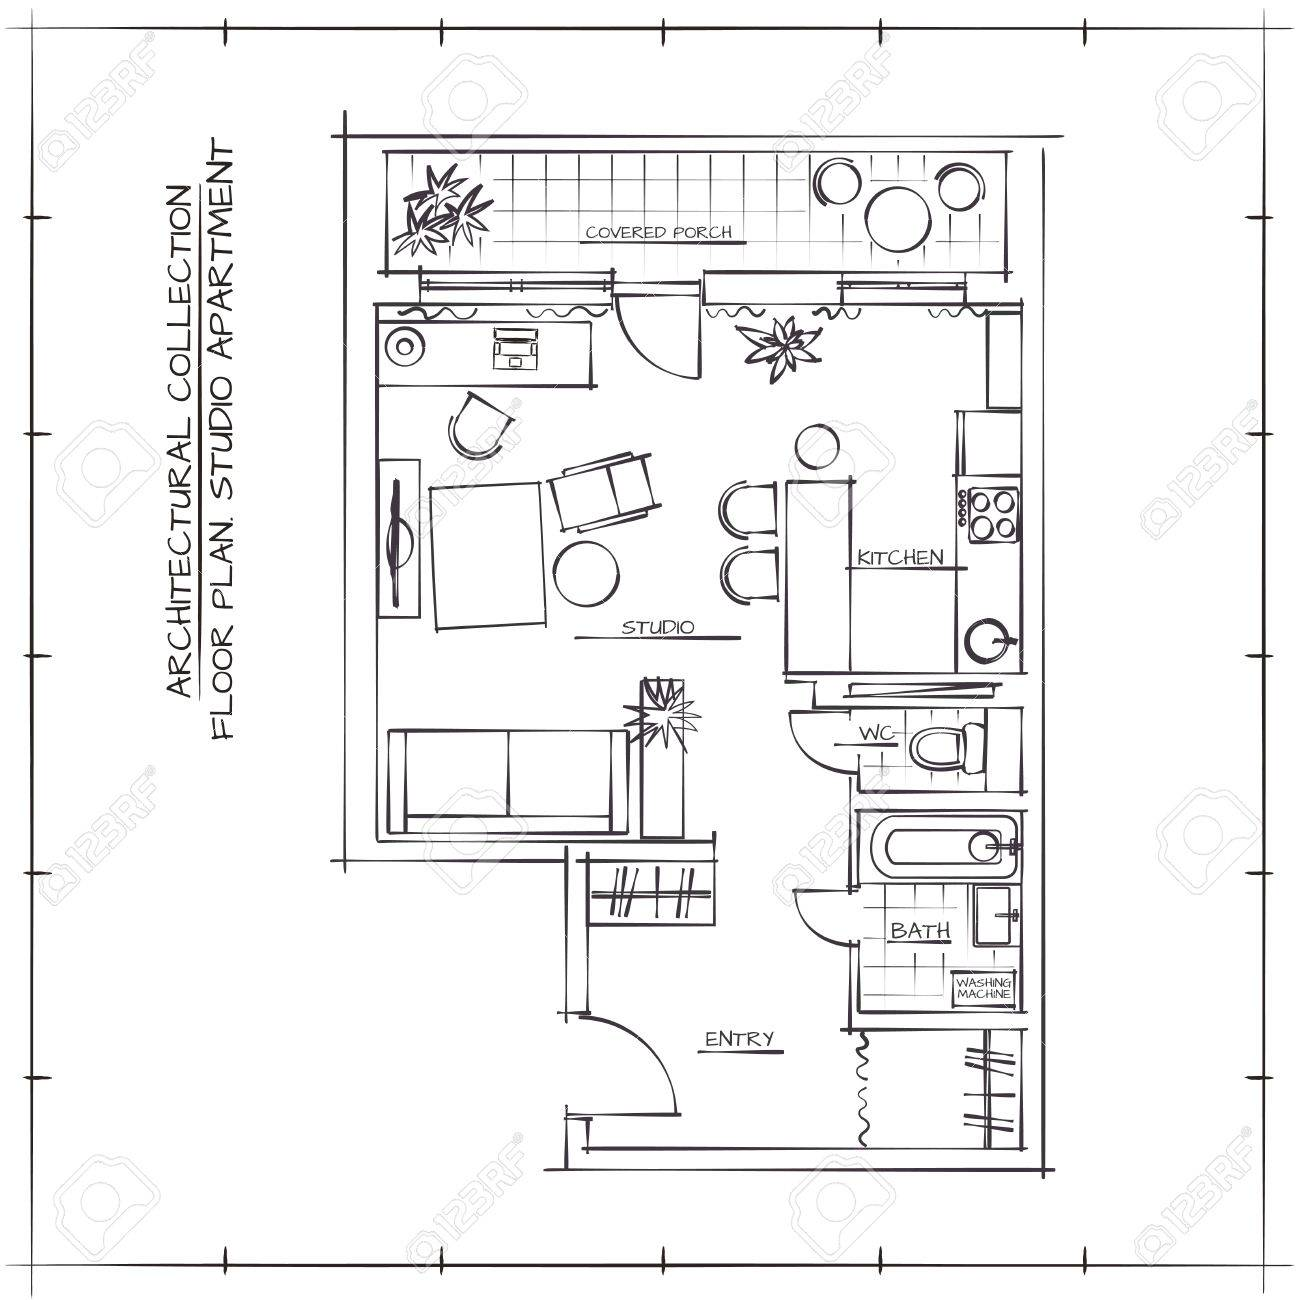 Architectural Sketch Floor Plan Studio Apartment Royalty Free Cliparts Vectors And Stock Illustration Image 55412702